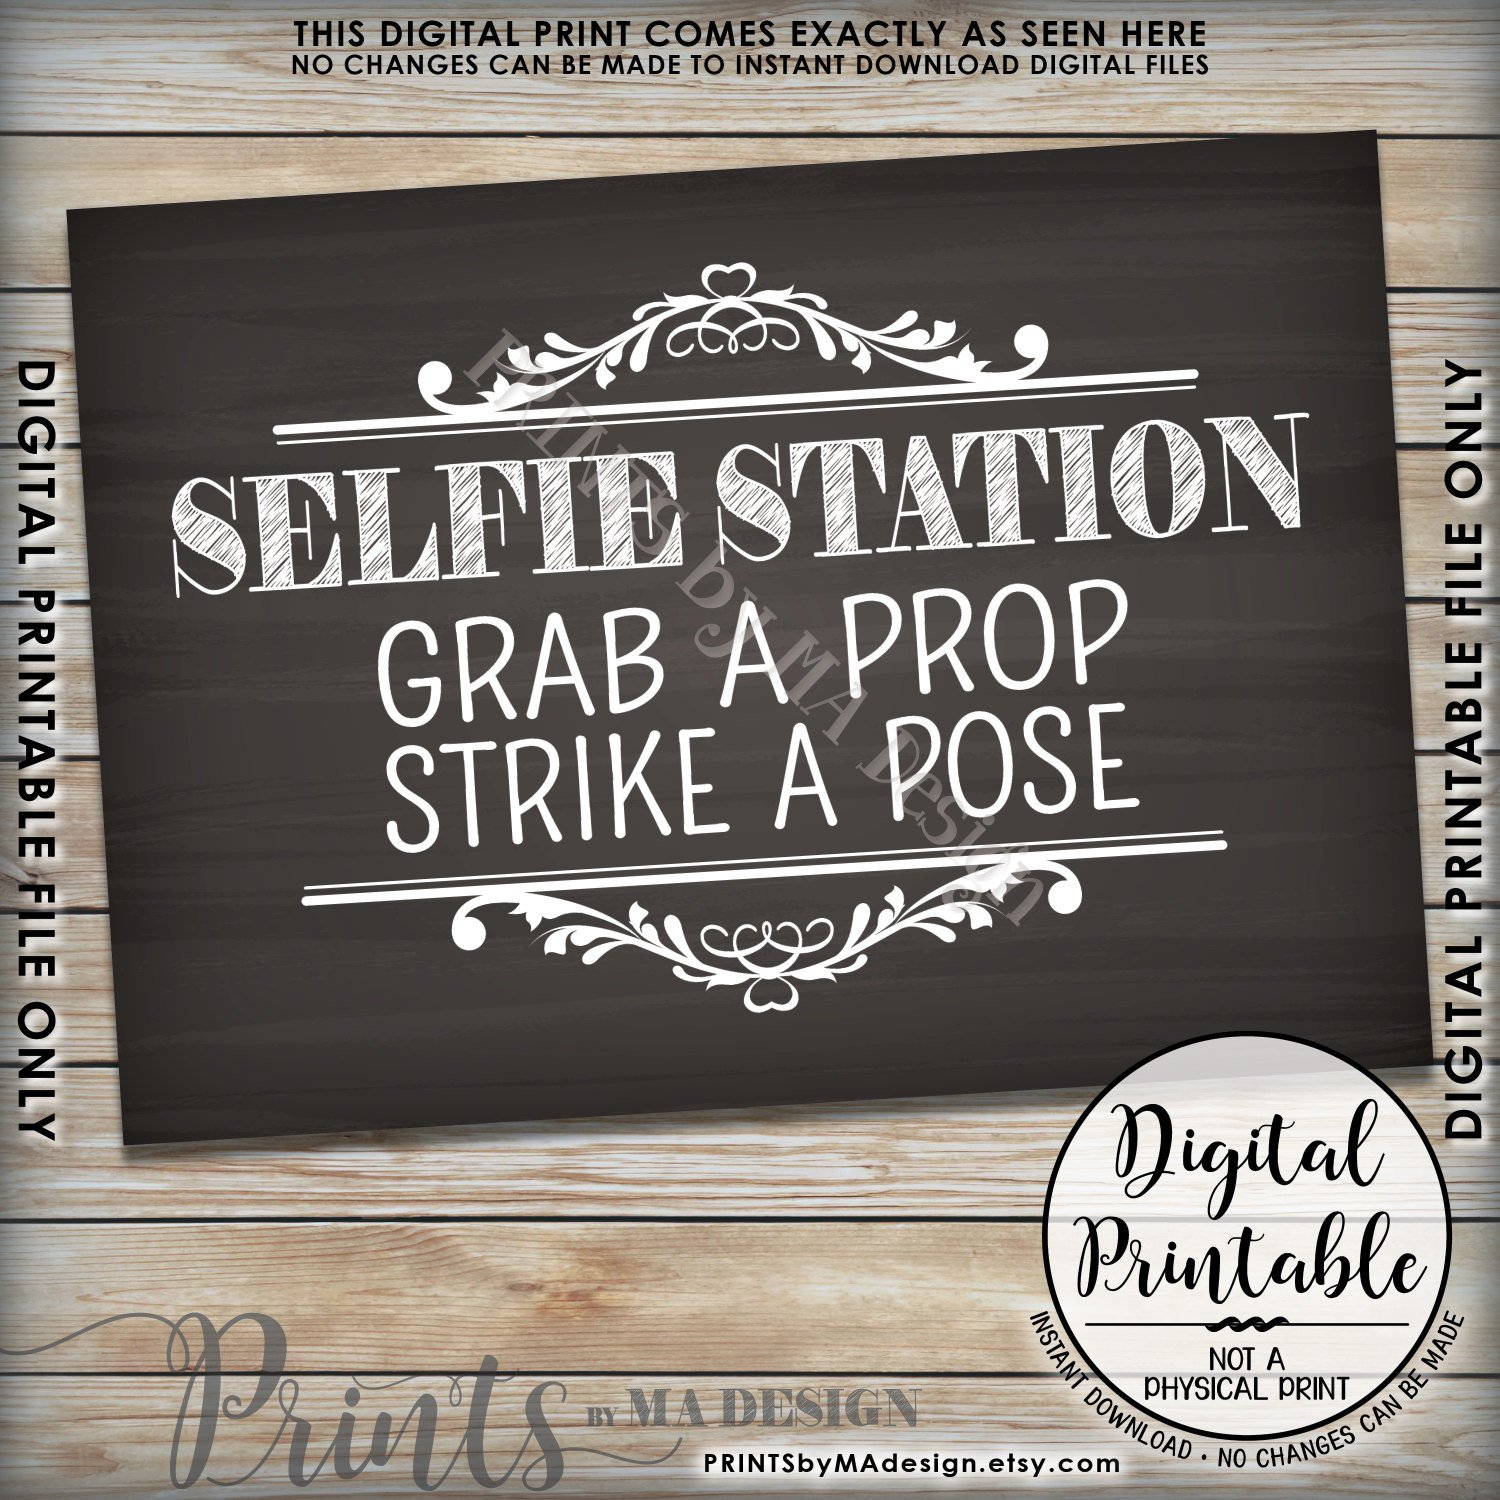 Selfie Station Sign, Grab A Prop & Strike A Pose Photo Booth Wedding - Selfie Station Free Printable